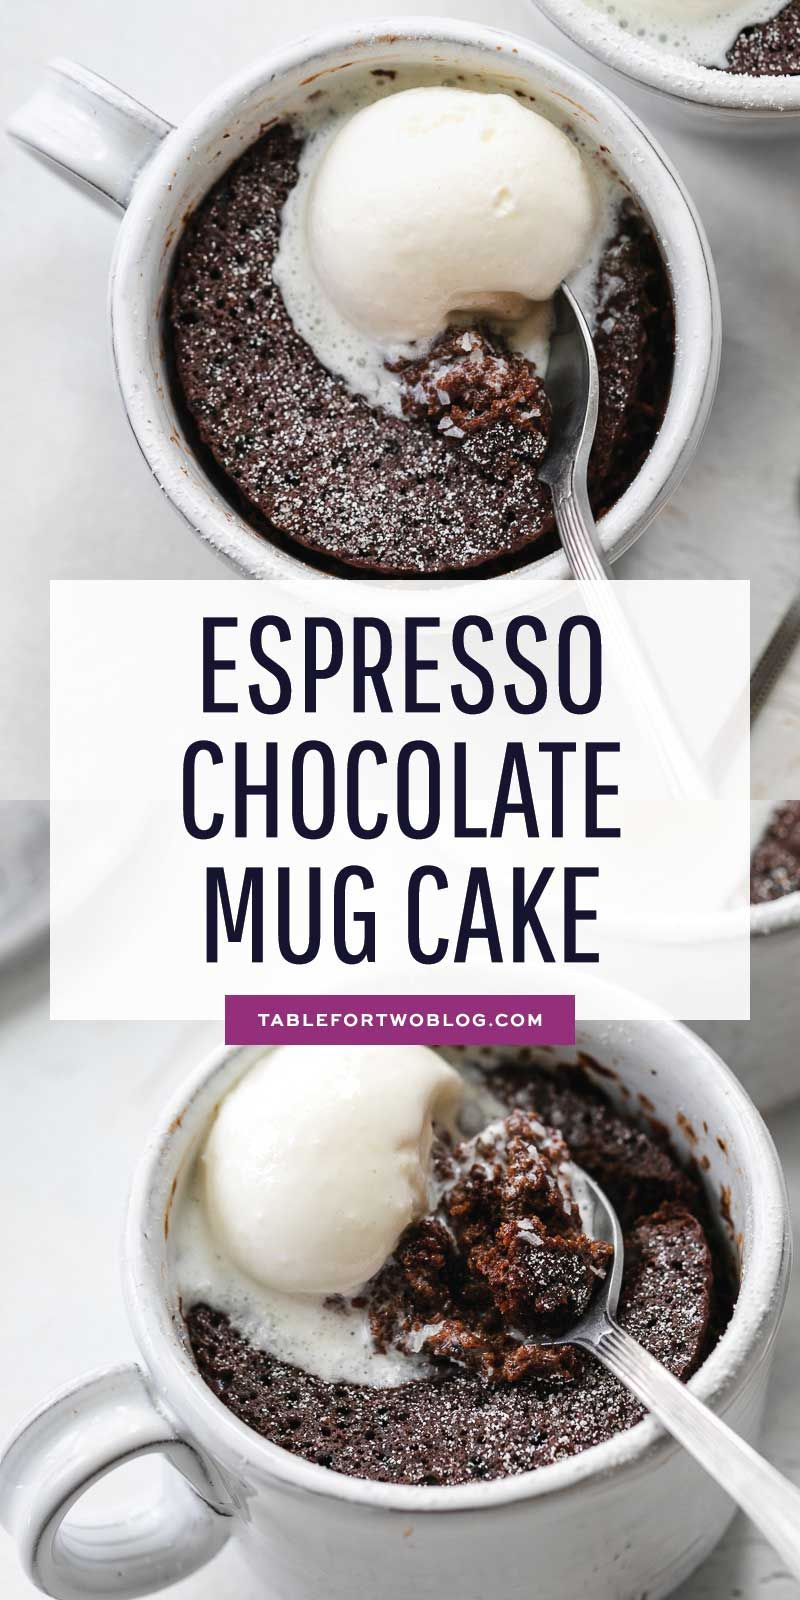 Espresso Chocolate Mug Cake - Coffee and Chocolate Mug Cake Recipe #mugcake